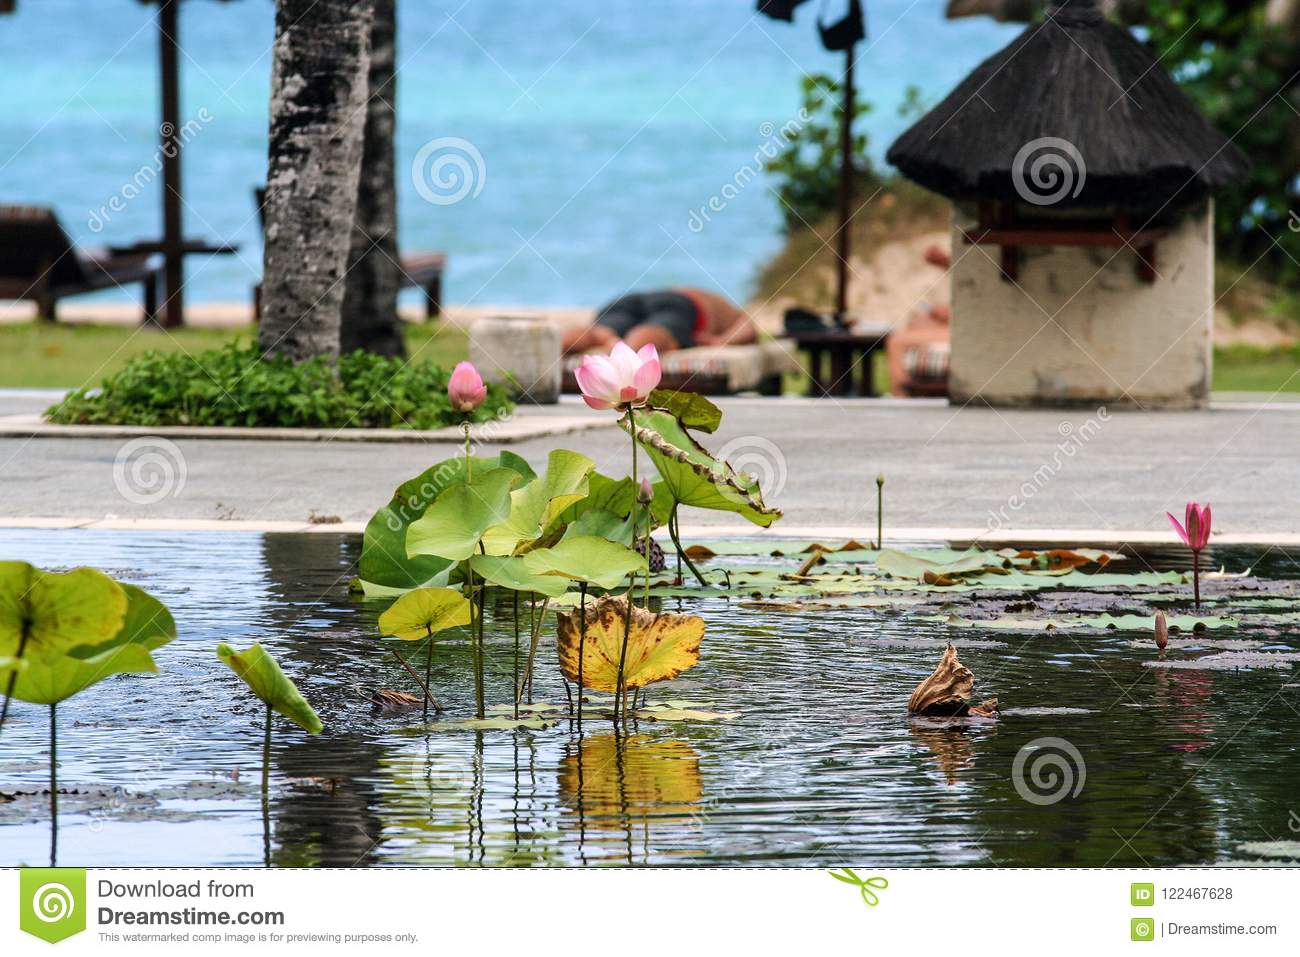 Pool with lilies and palm trees around it. Seascape of Indonesia.